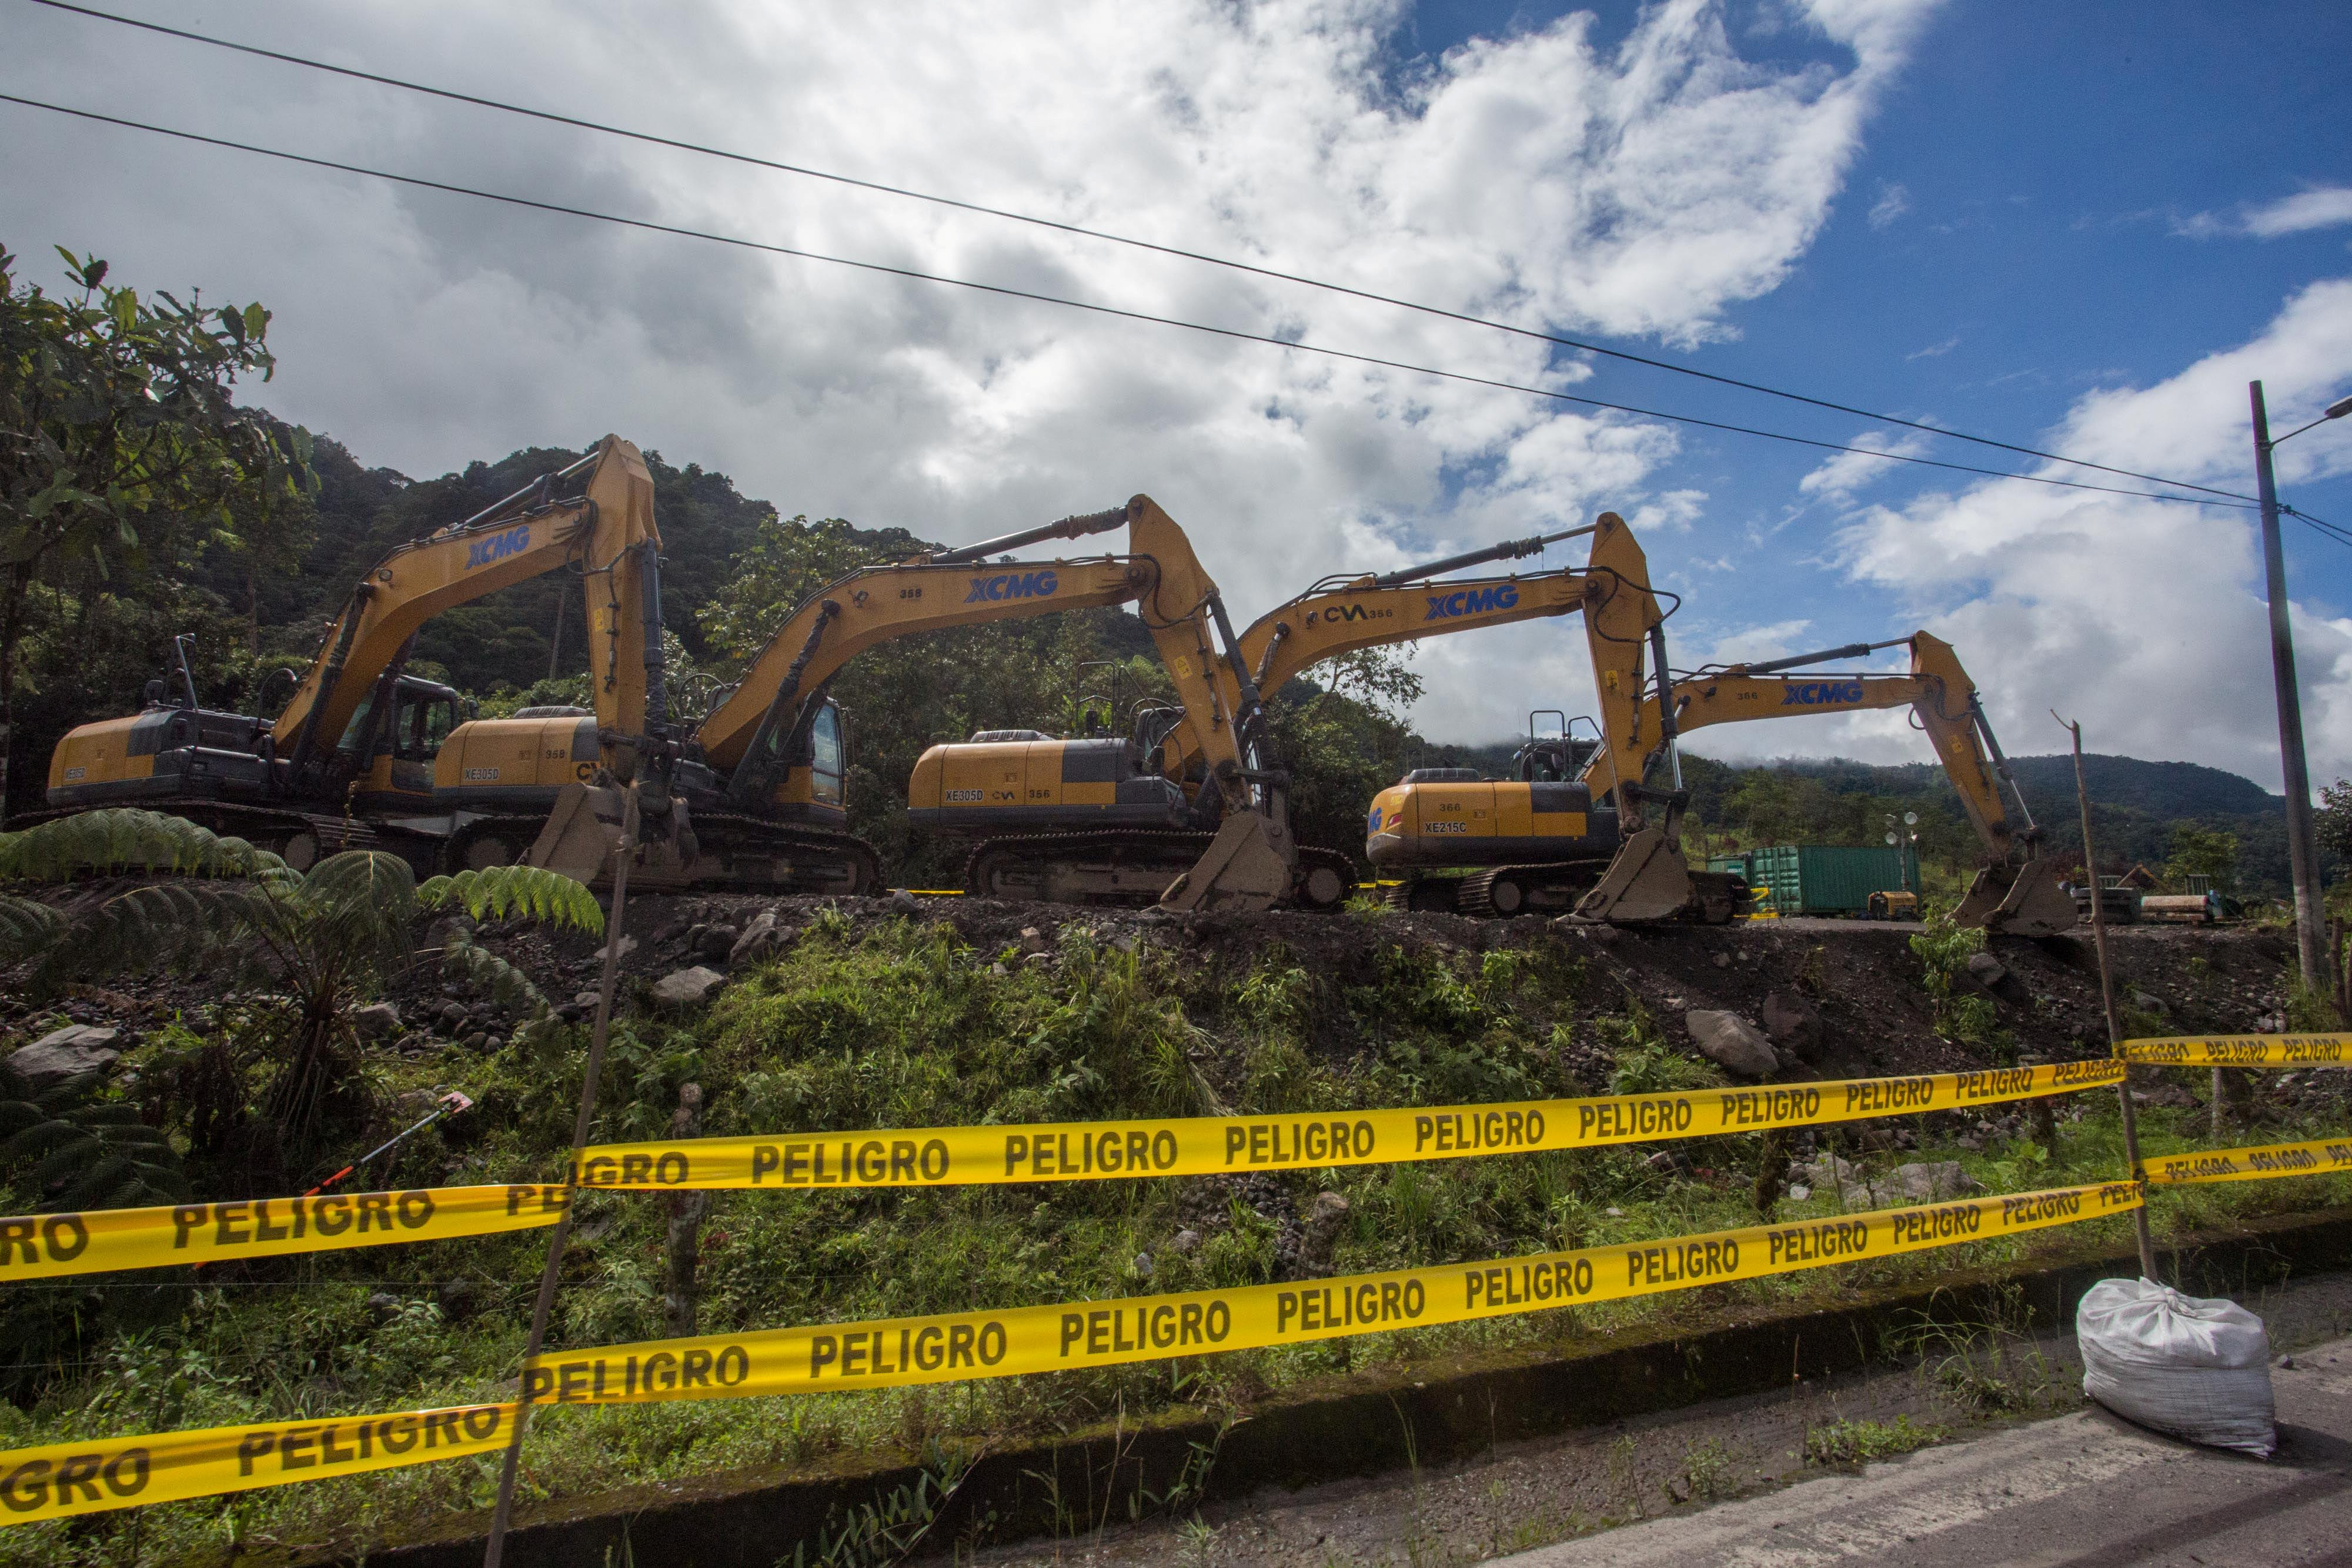 Bulldozers are seen parked during repair works of a damaged pipeline that caused an oil spill, in El Reventador, Ecuador May 19, 2020. Ivan Castaneira/Amazon Watch/Handout via REUTERS